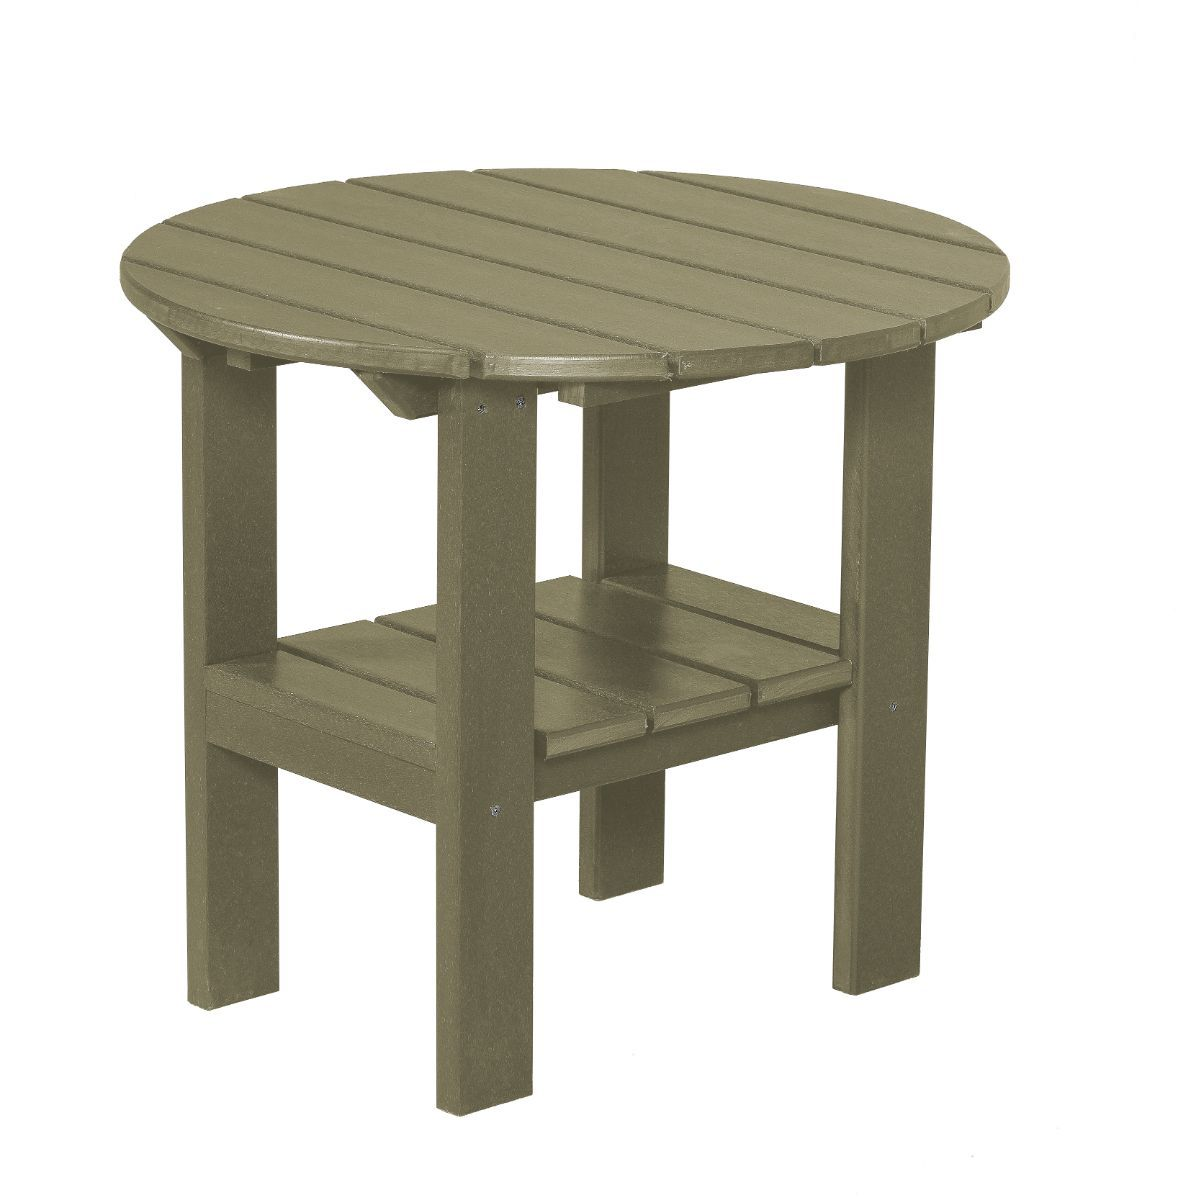 Olive Odessa Round Outdoor Side Table